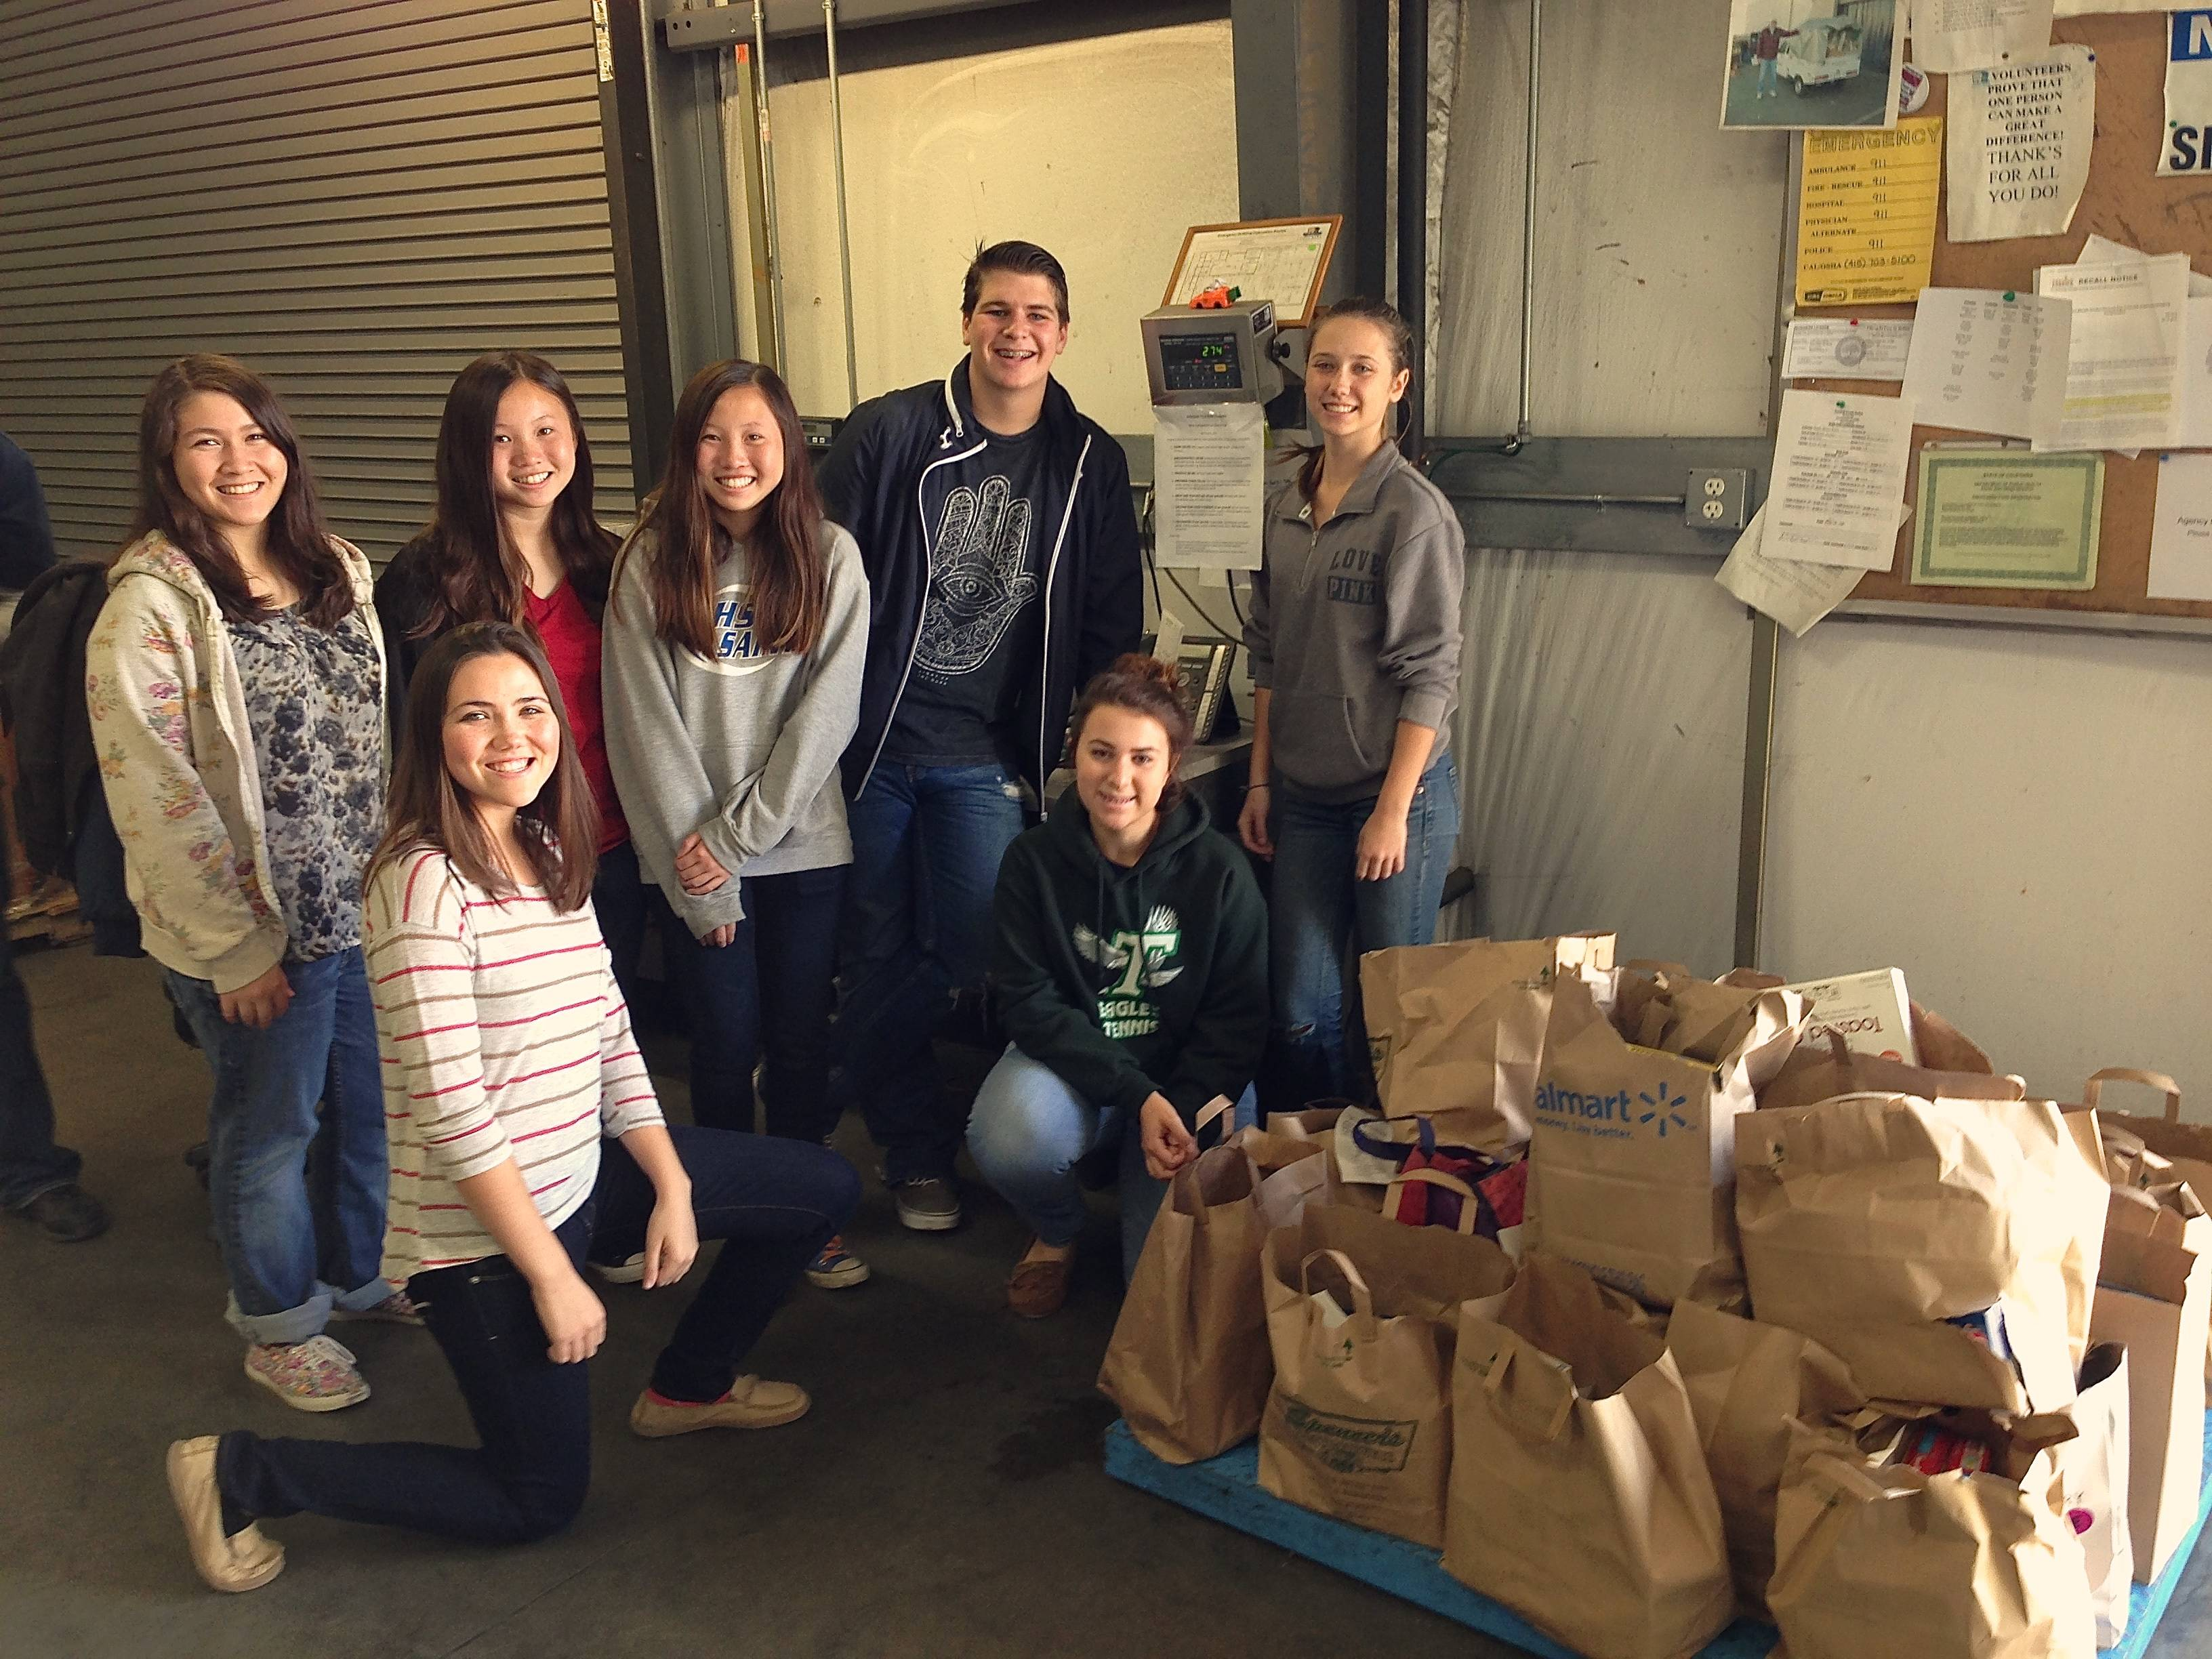 "<span class=""slider_description"">Youth group volunteering at Food Bank warehouse</span>"